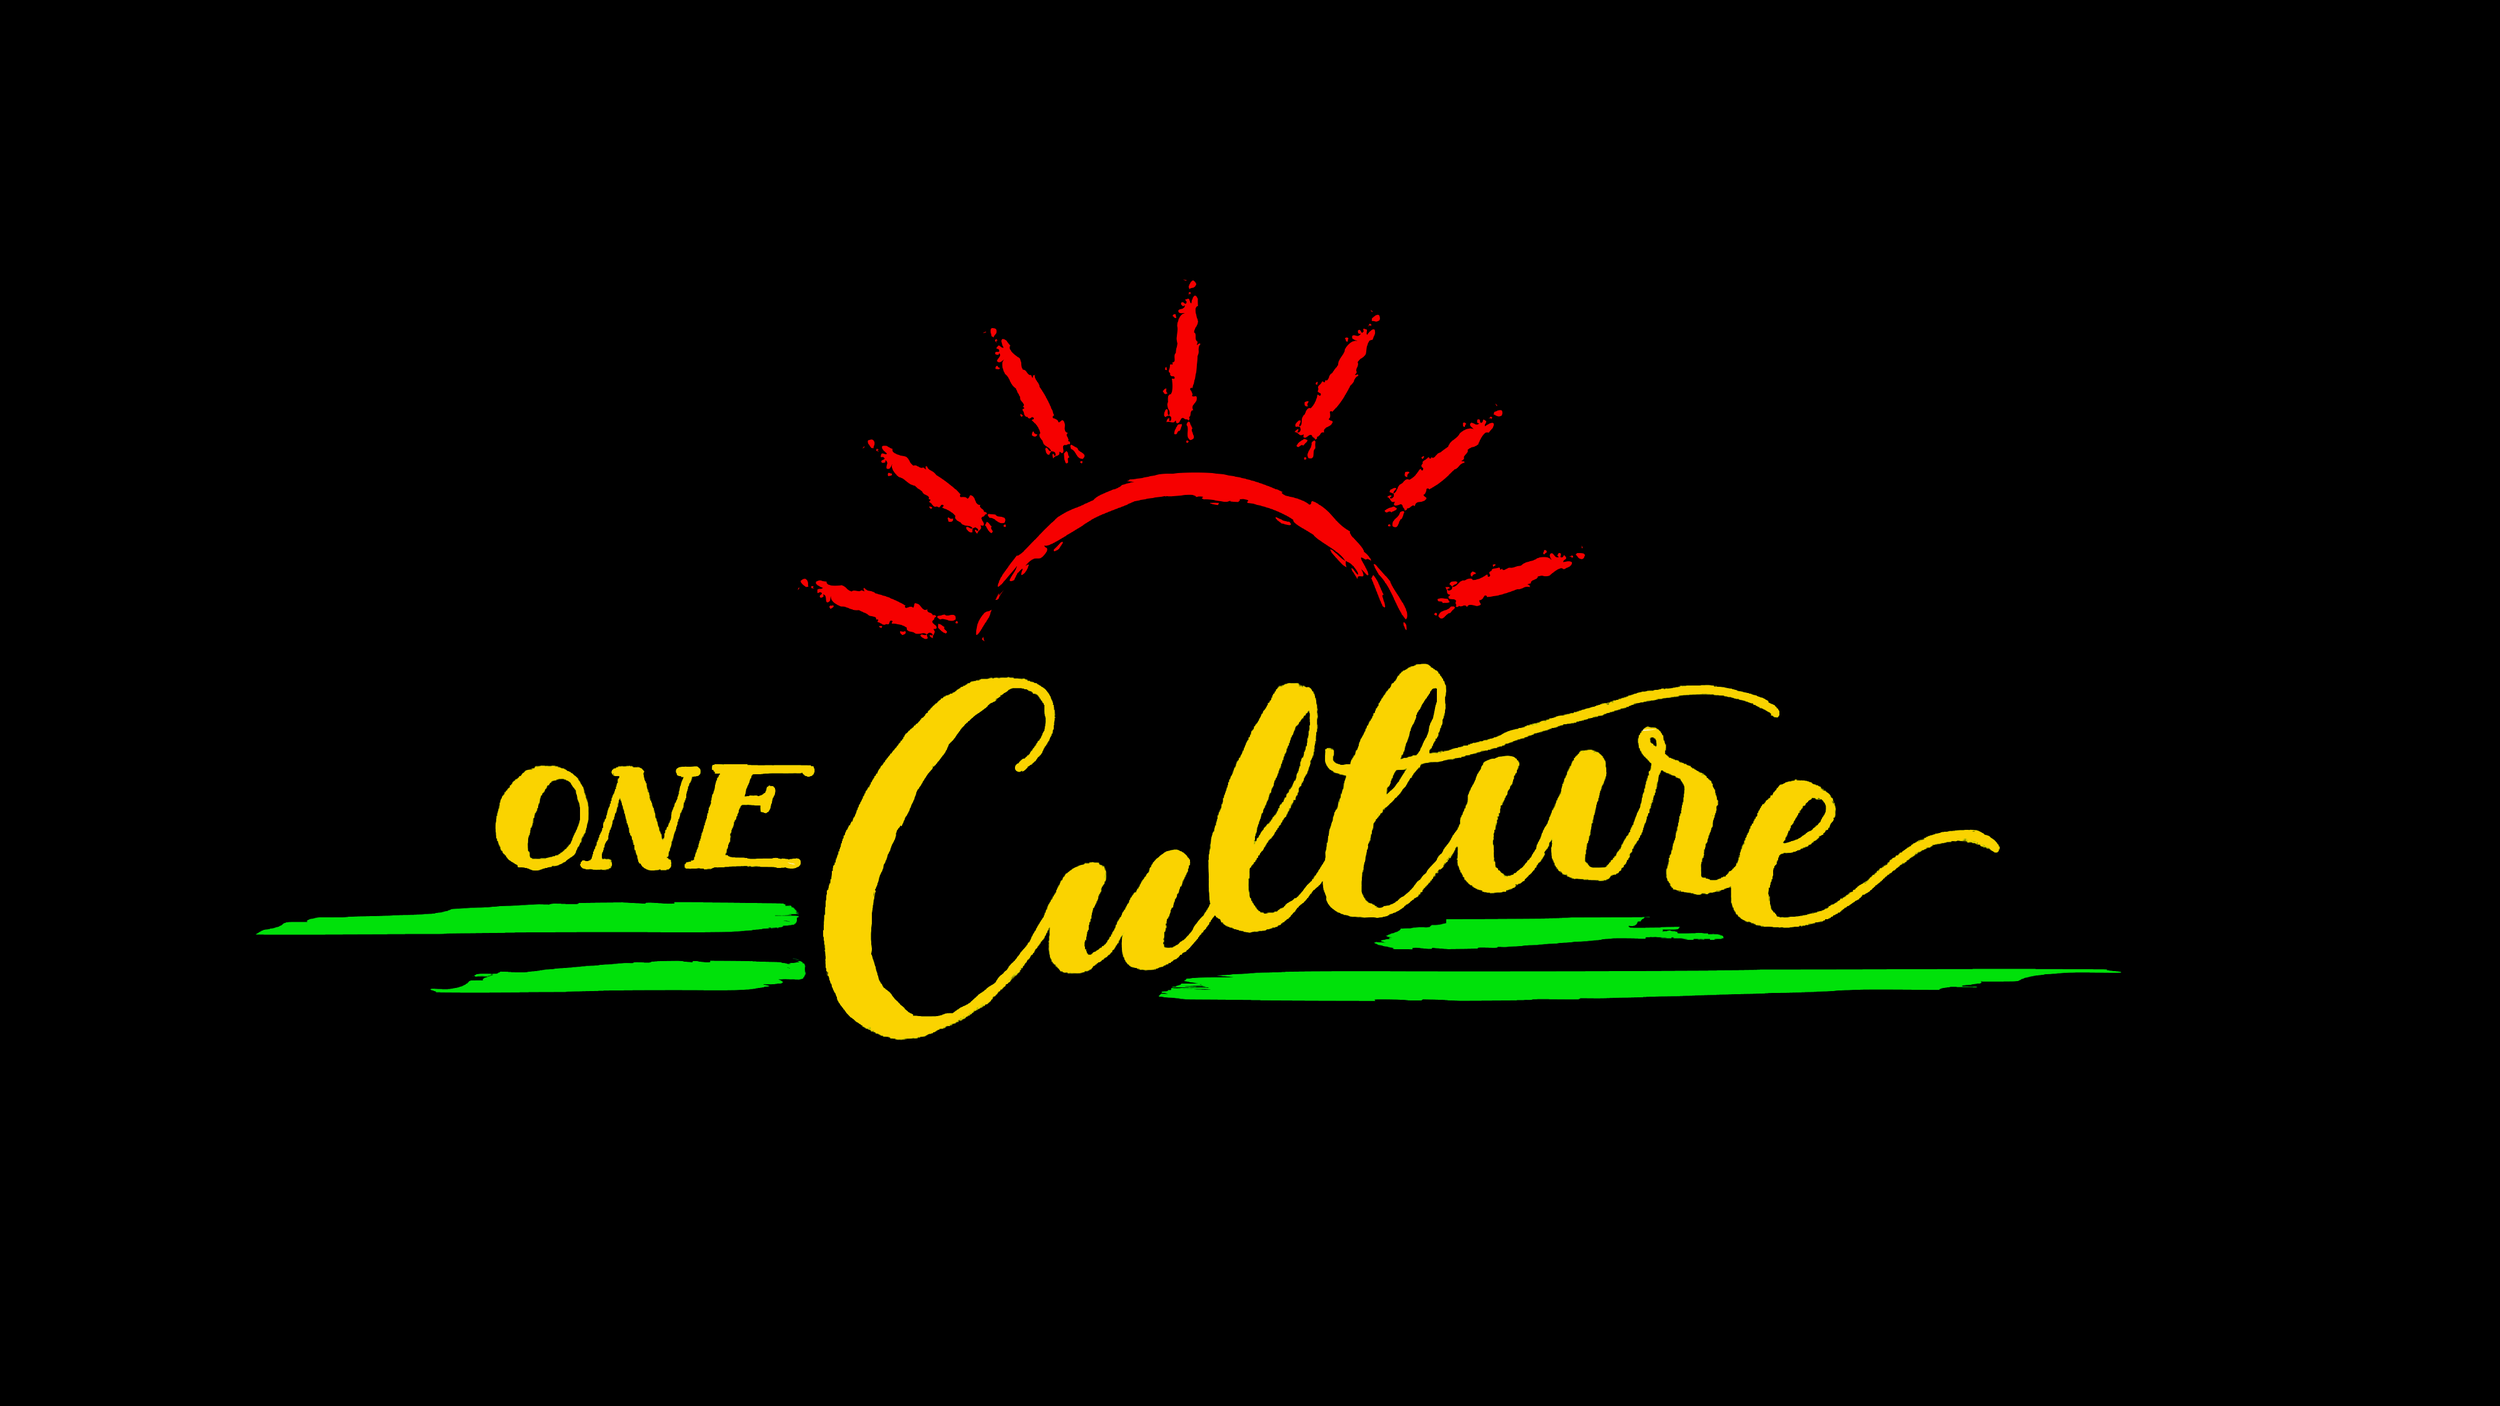 ONE culture done-03.png